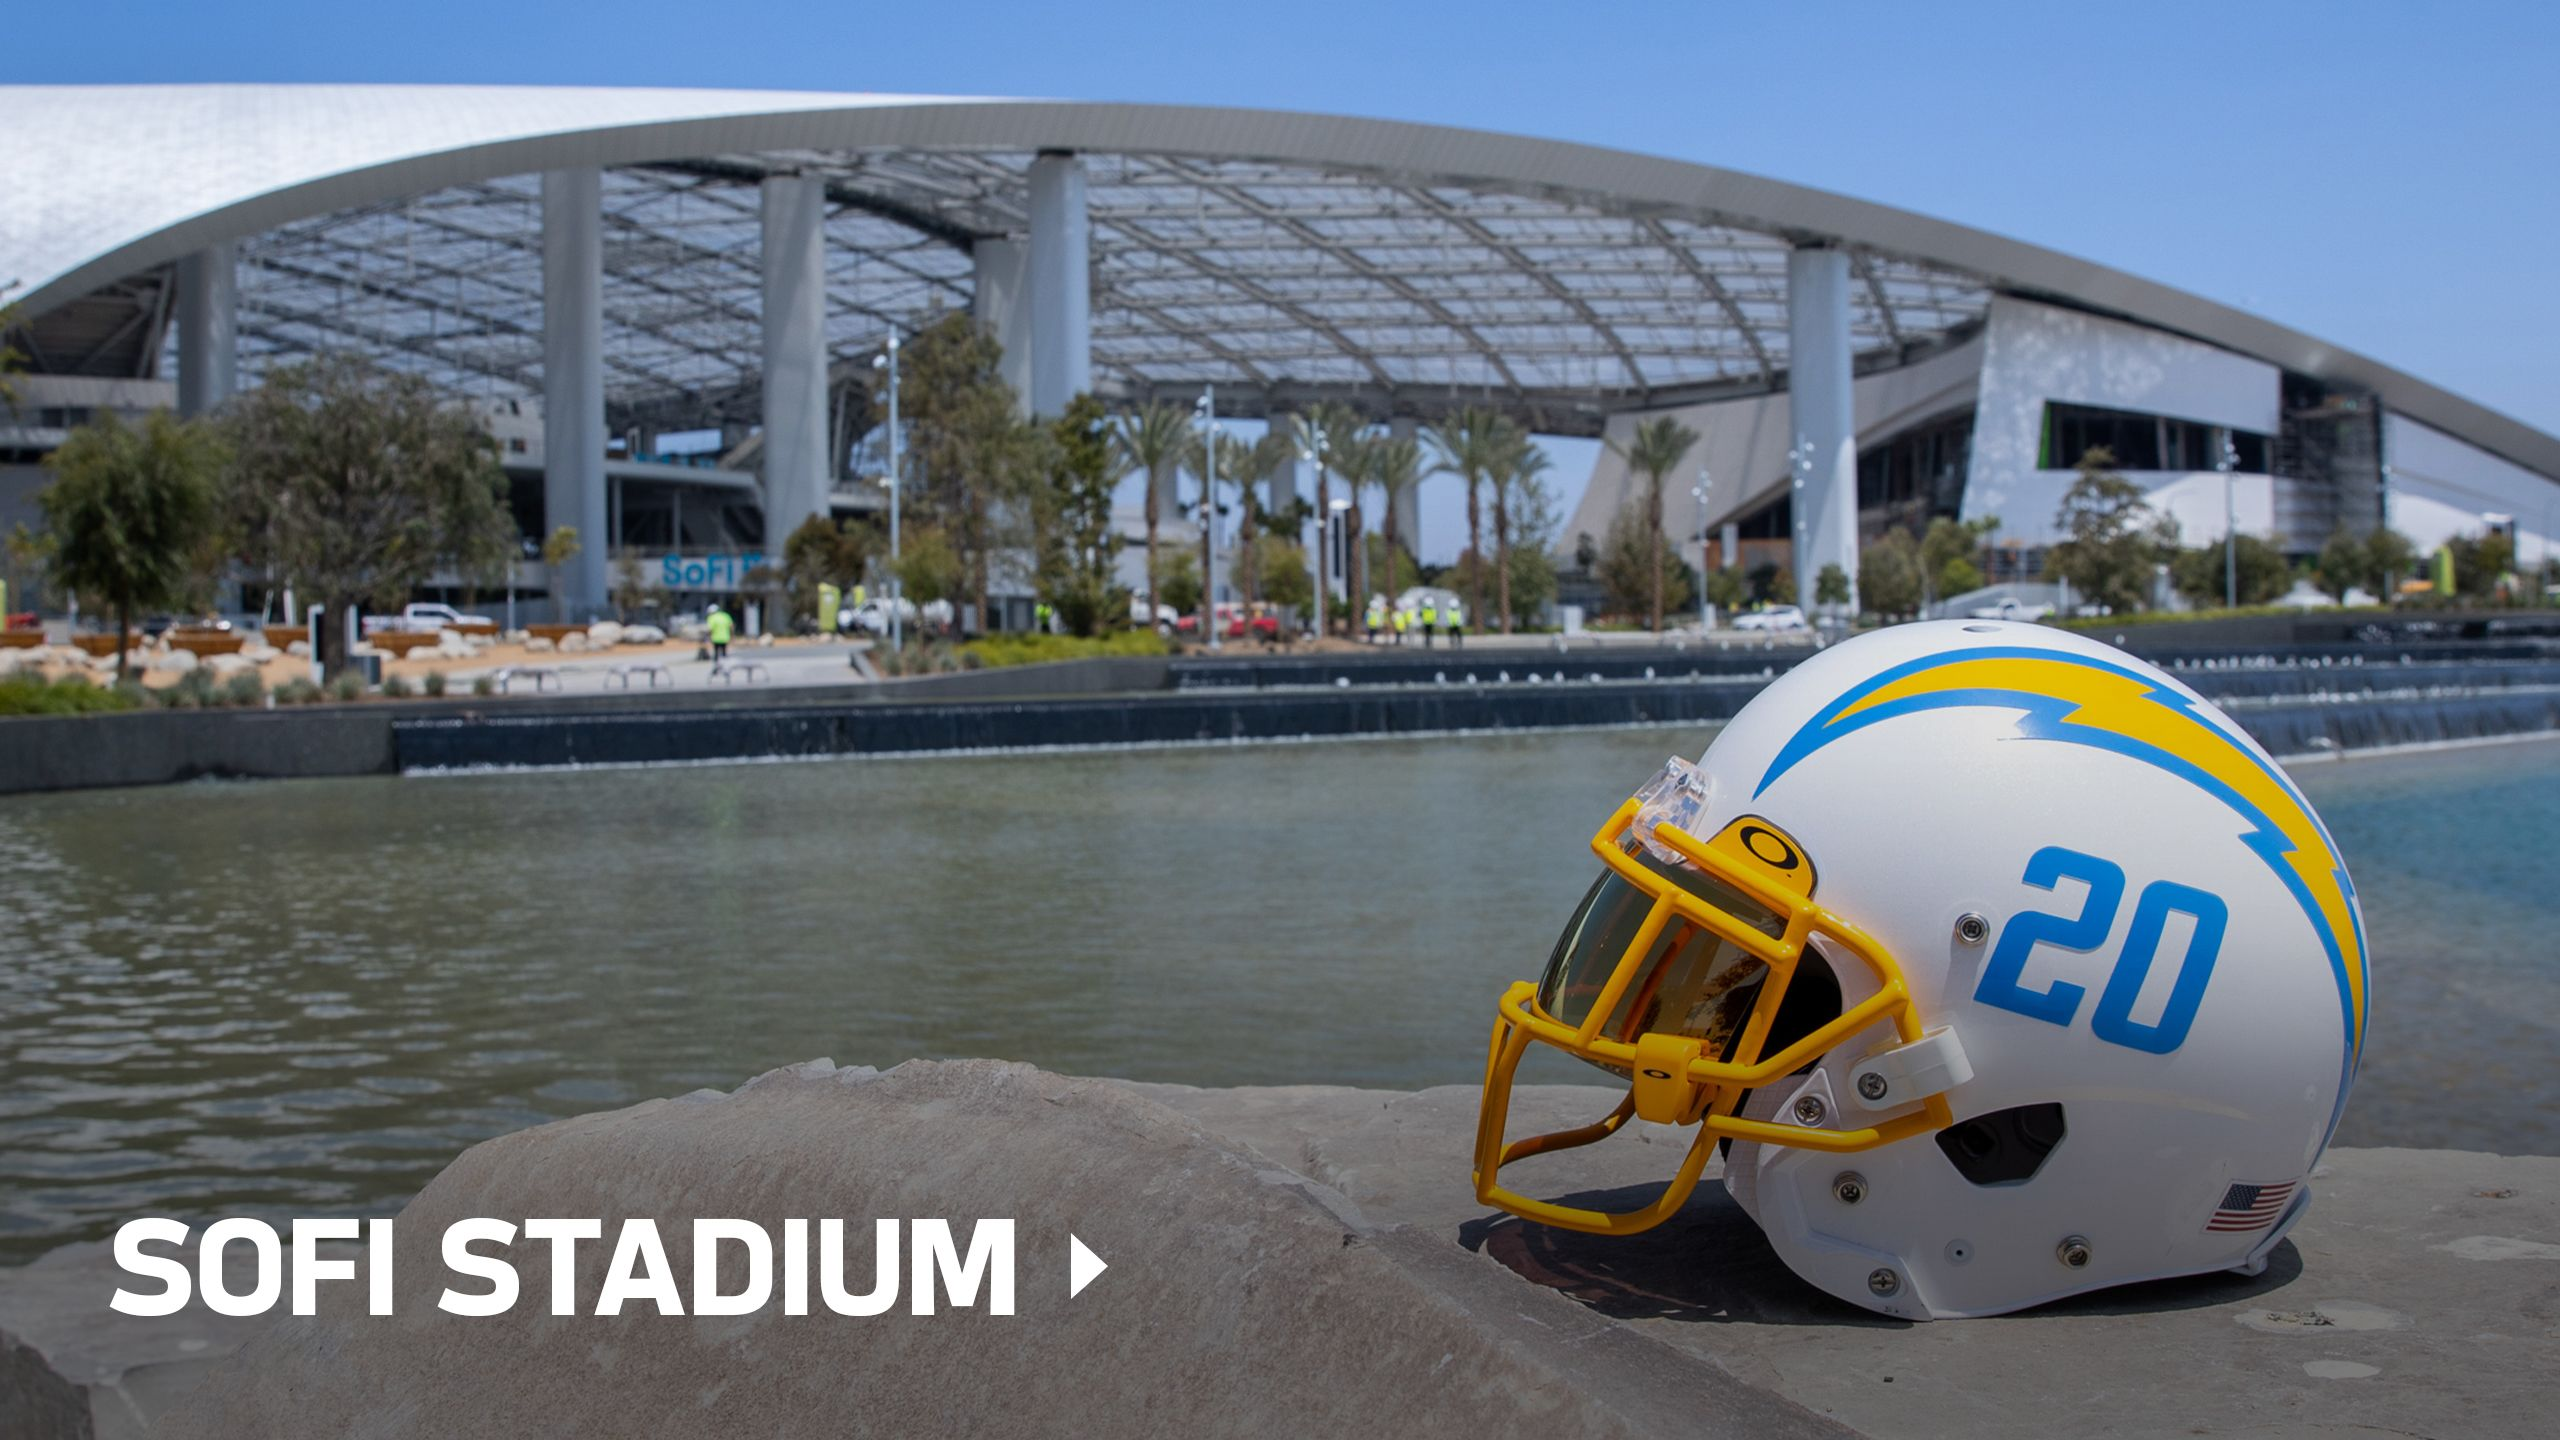 Learn more about SoFi Stadium